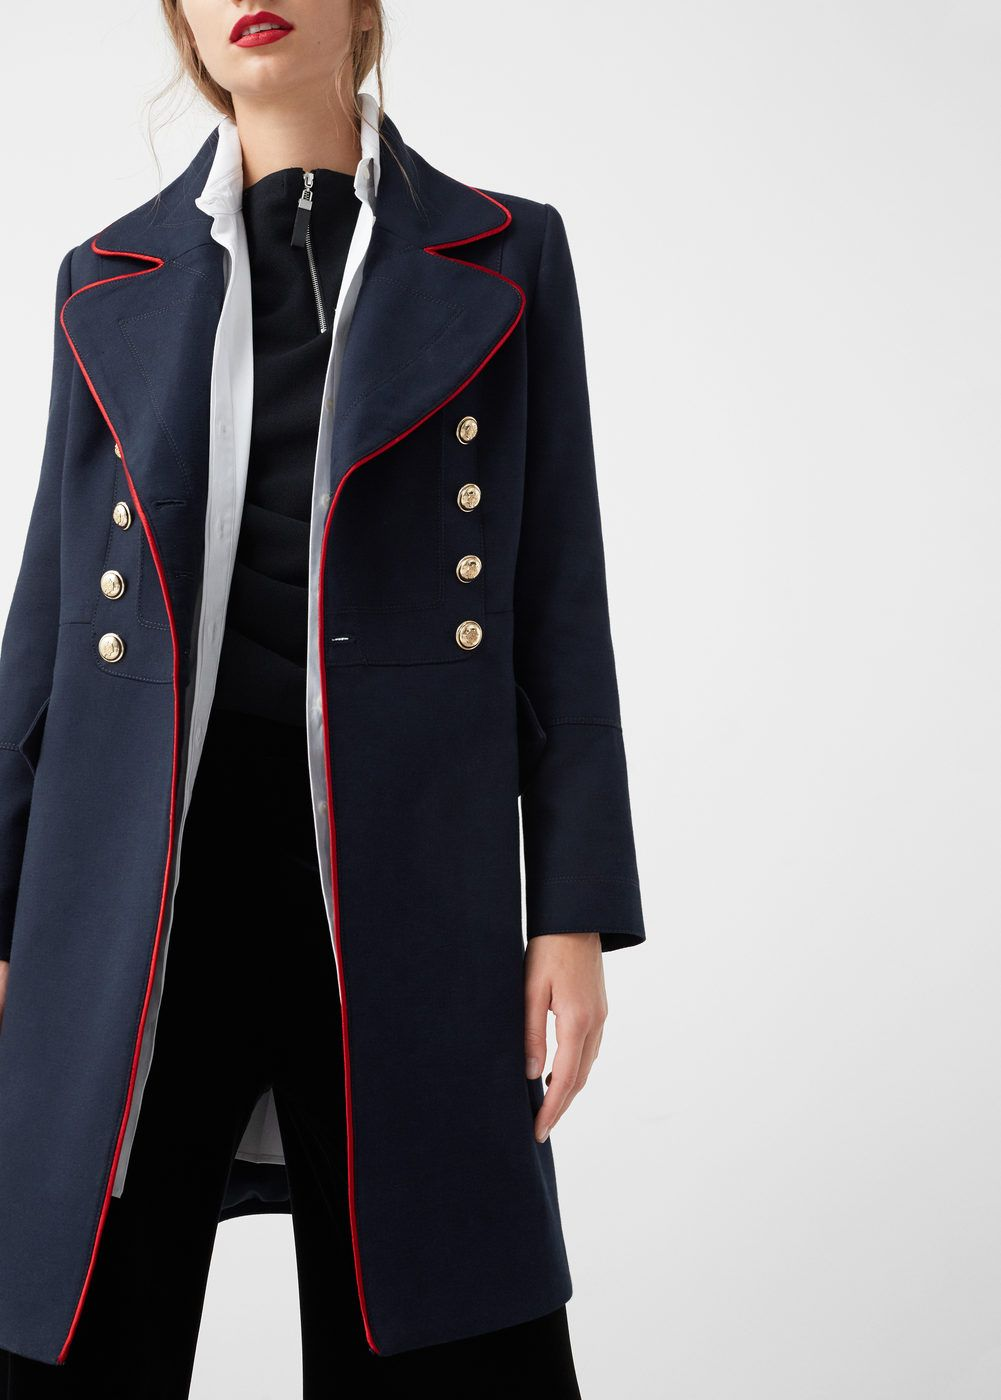 Military style coat | Military style coats, Military style and ...